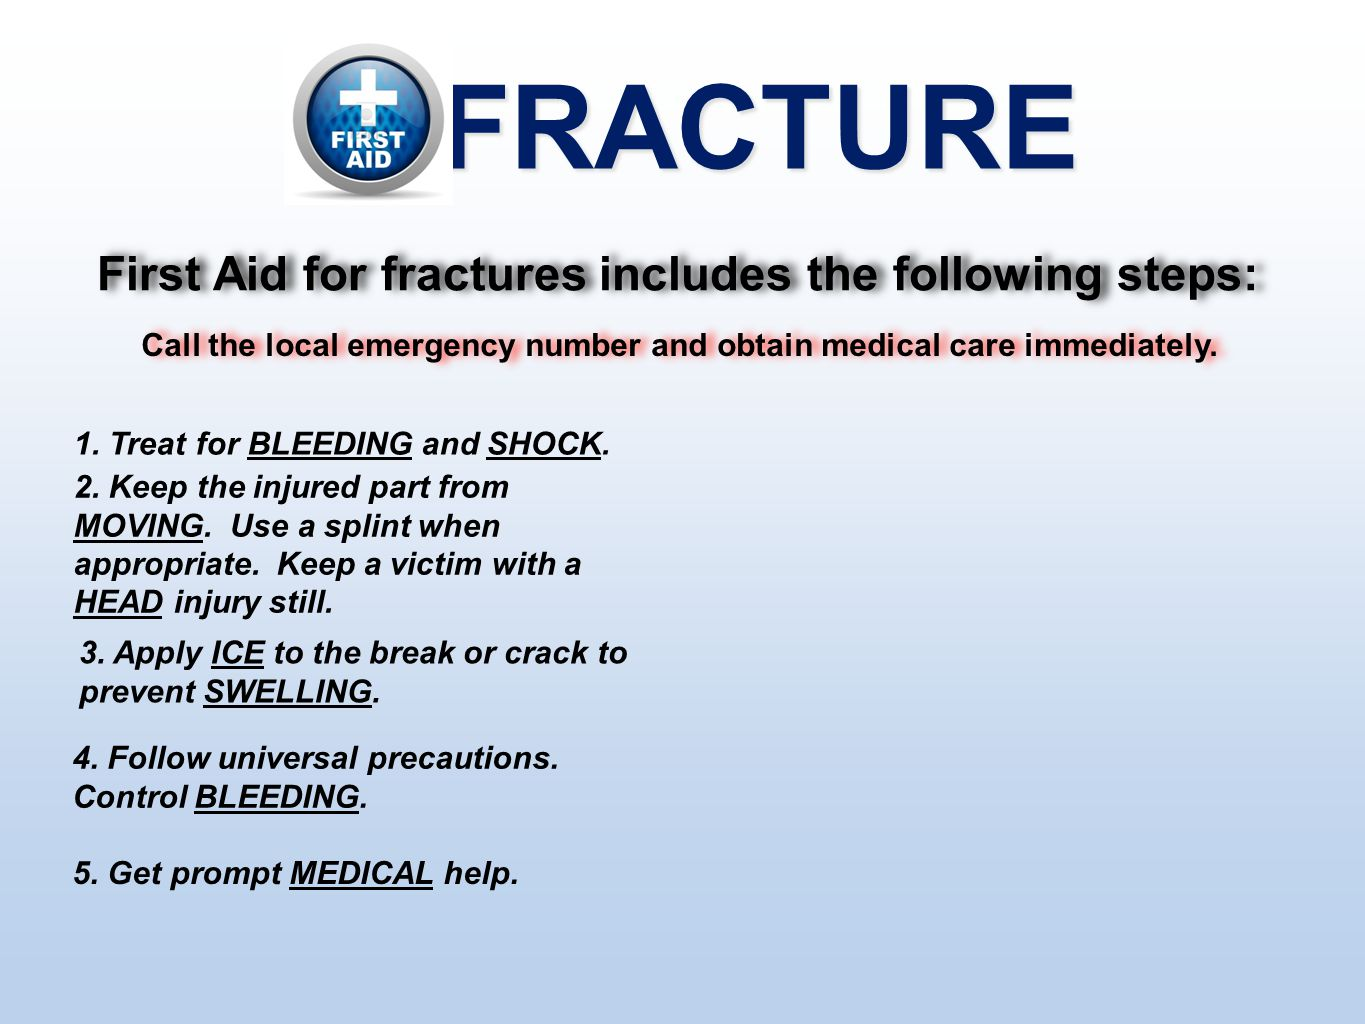 FRACTURE First Aid for fractures includes the following steps: Call the local emergency number and obtain medical care immediately. 1. Treat for BLEED